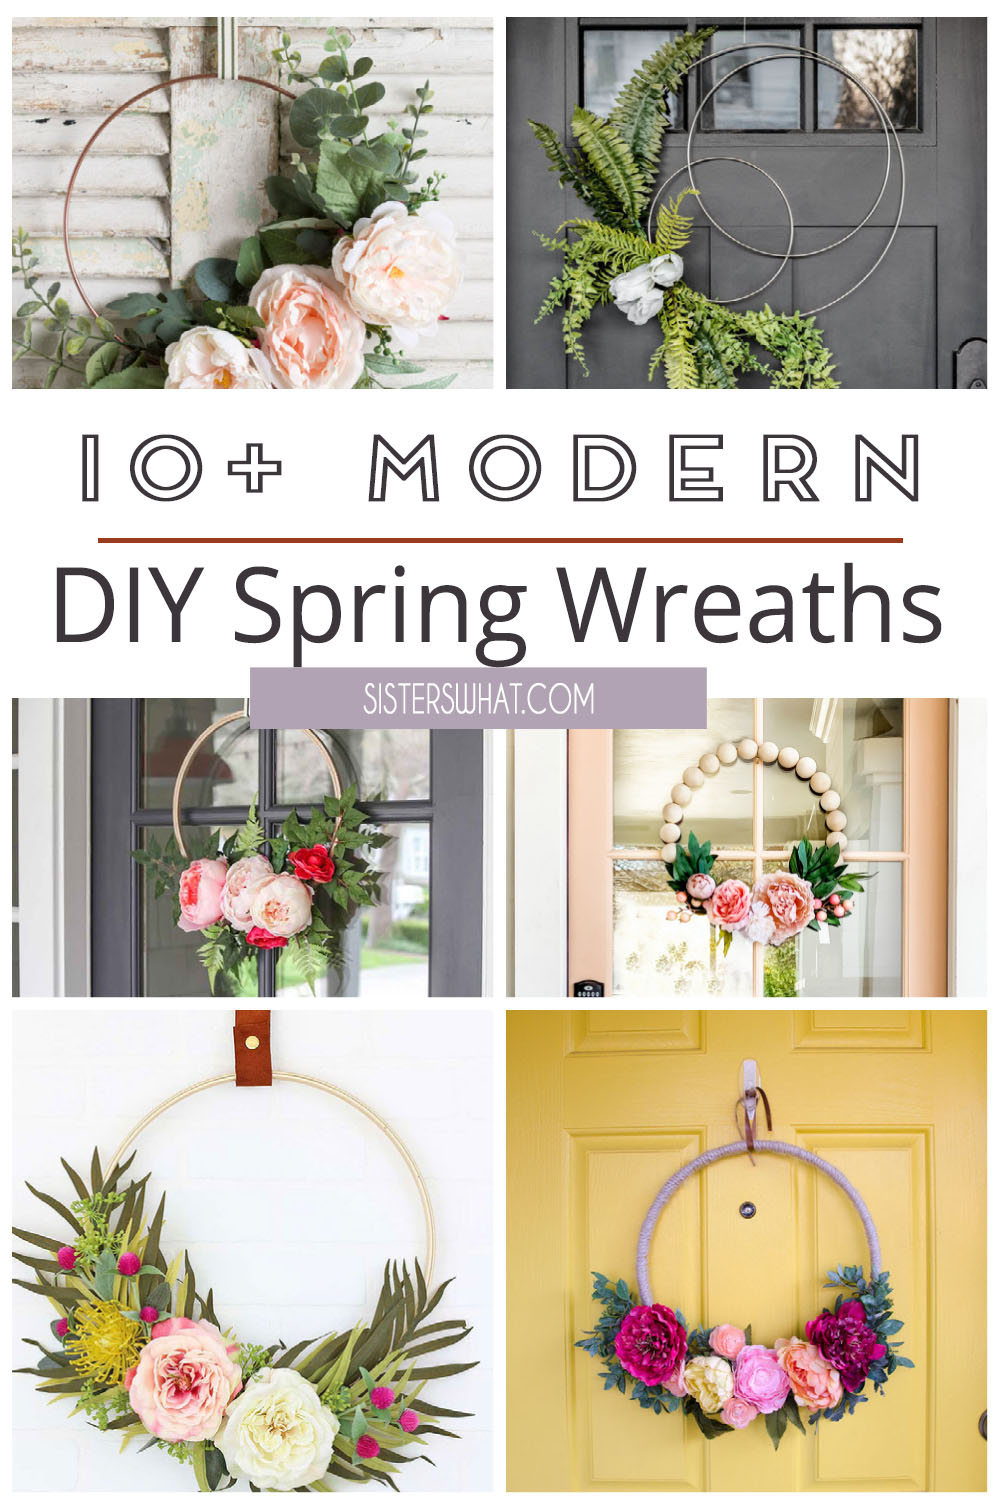 DIY Modern Floral Wreaths to make